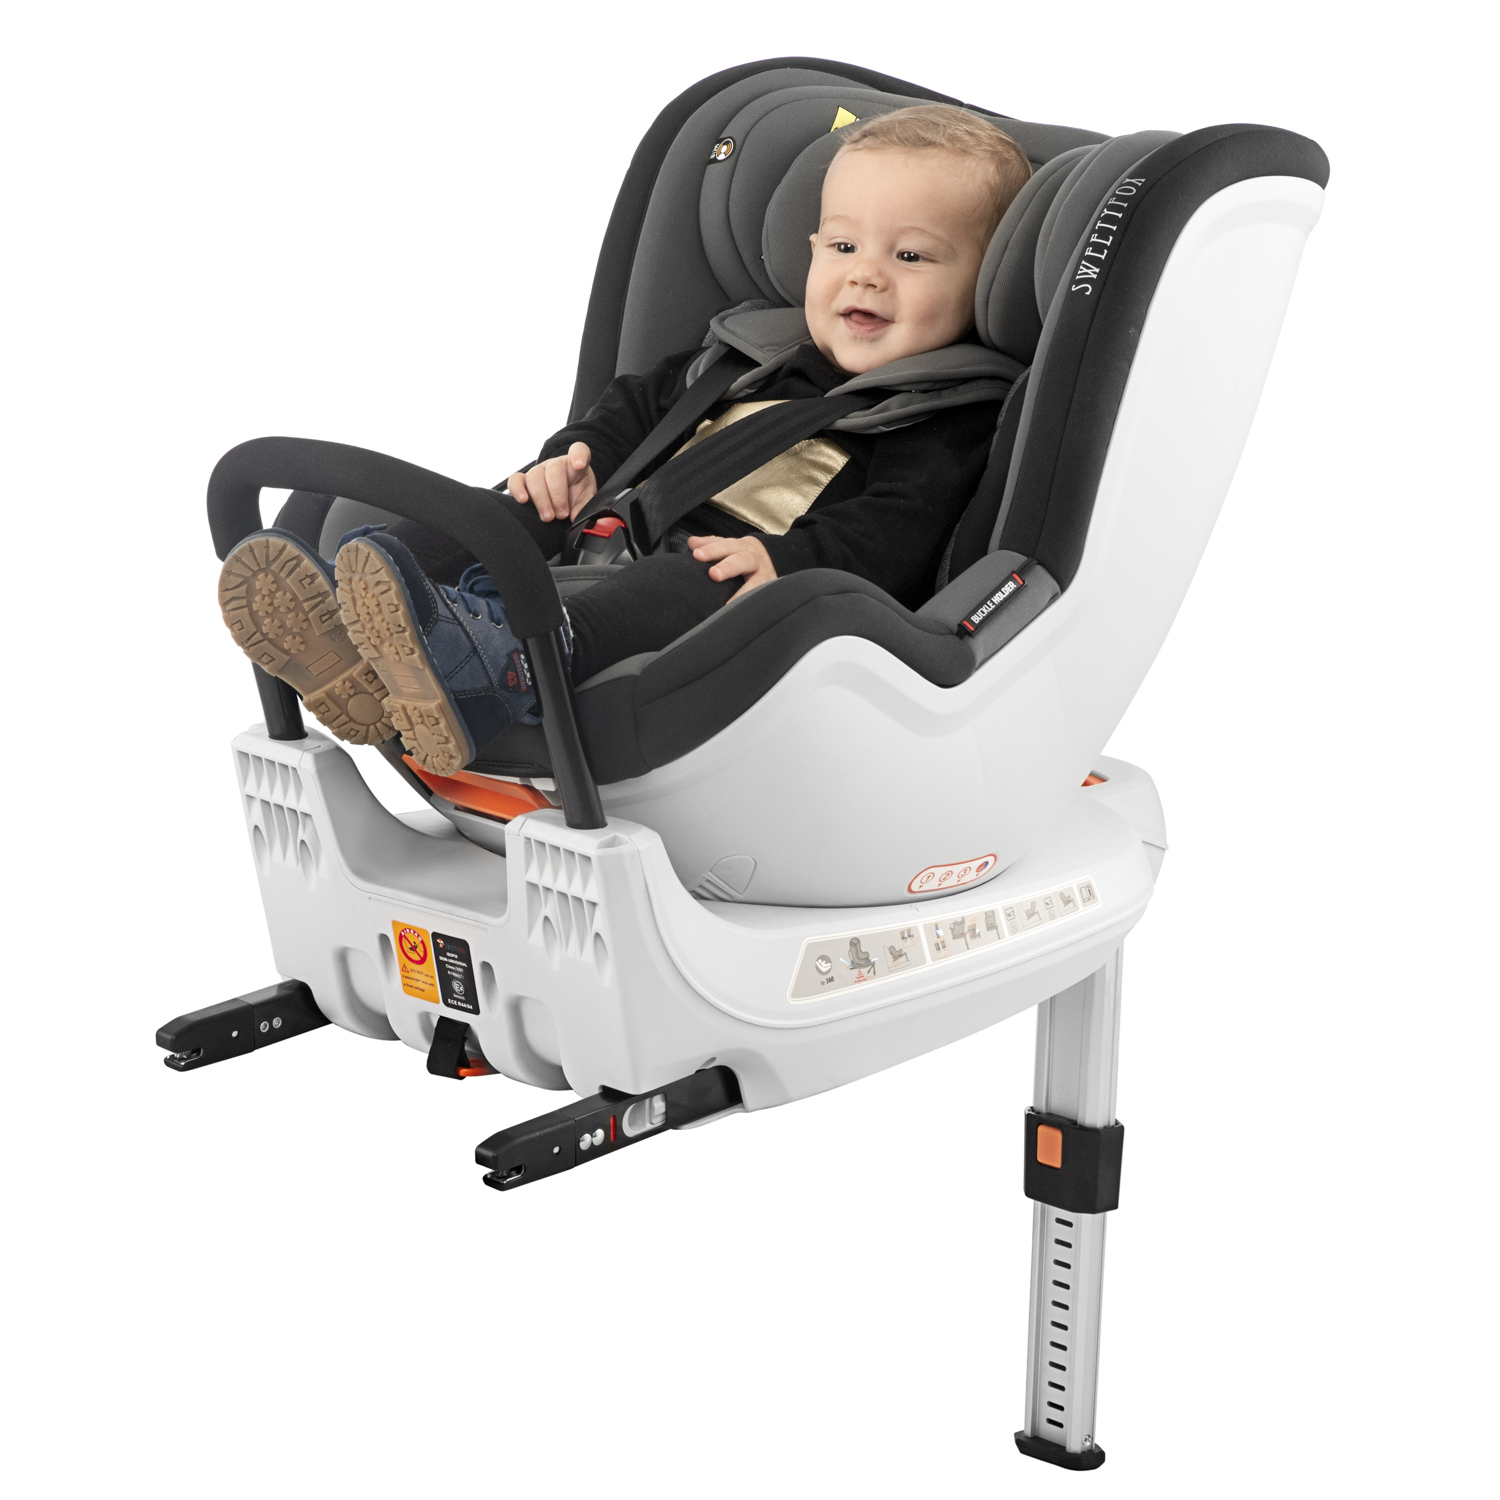 lettstudio_packshot_white_background_carseat2.jpg